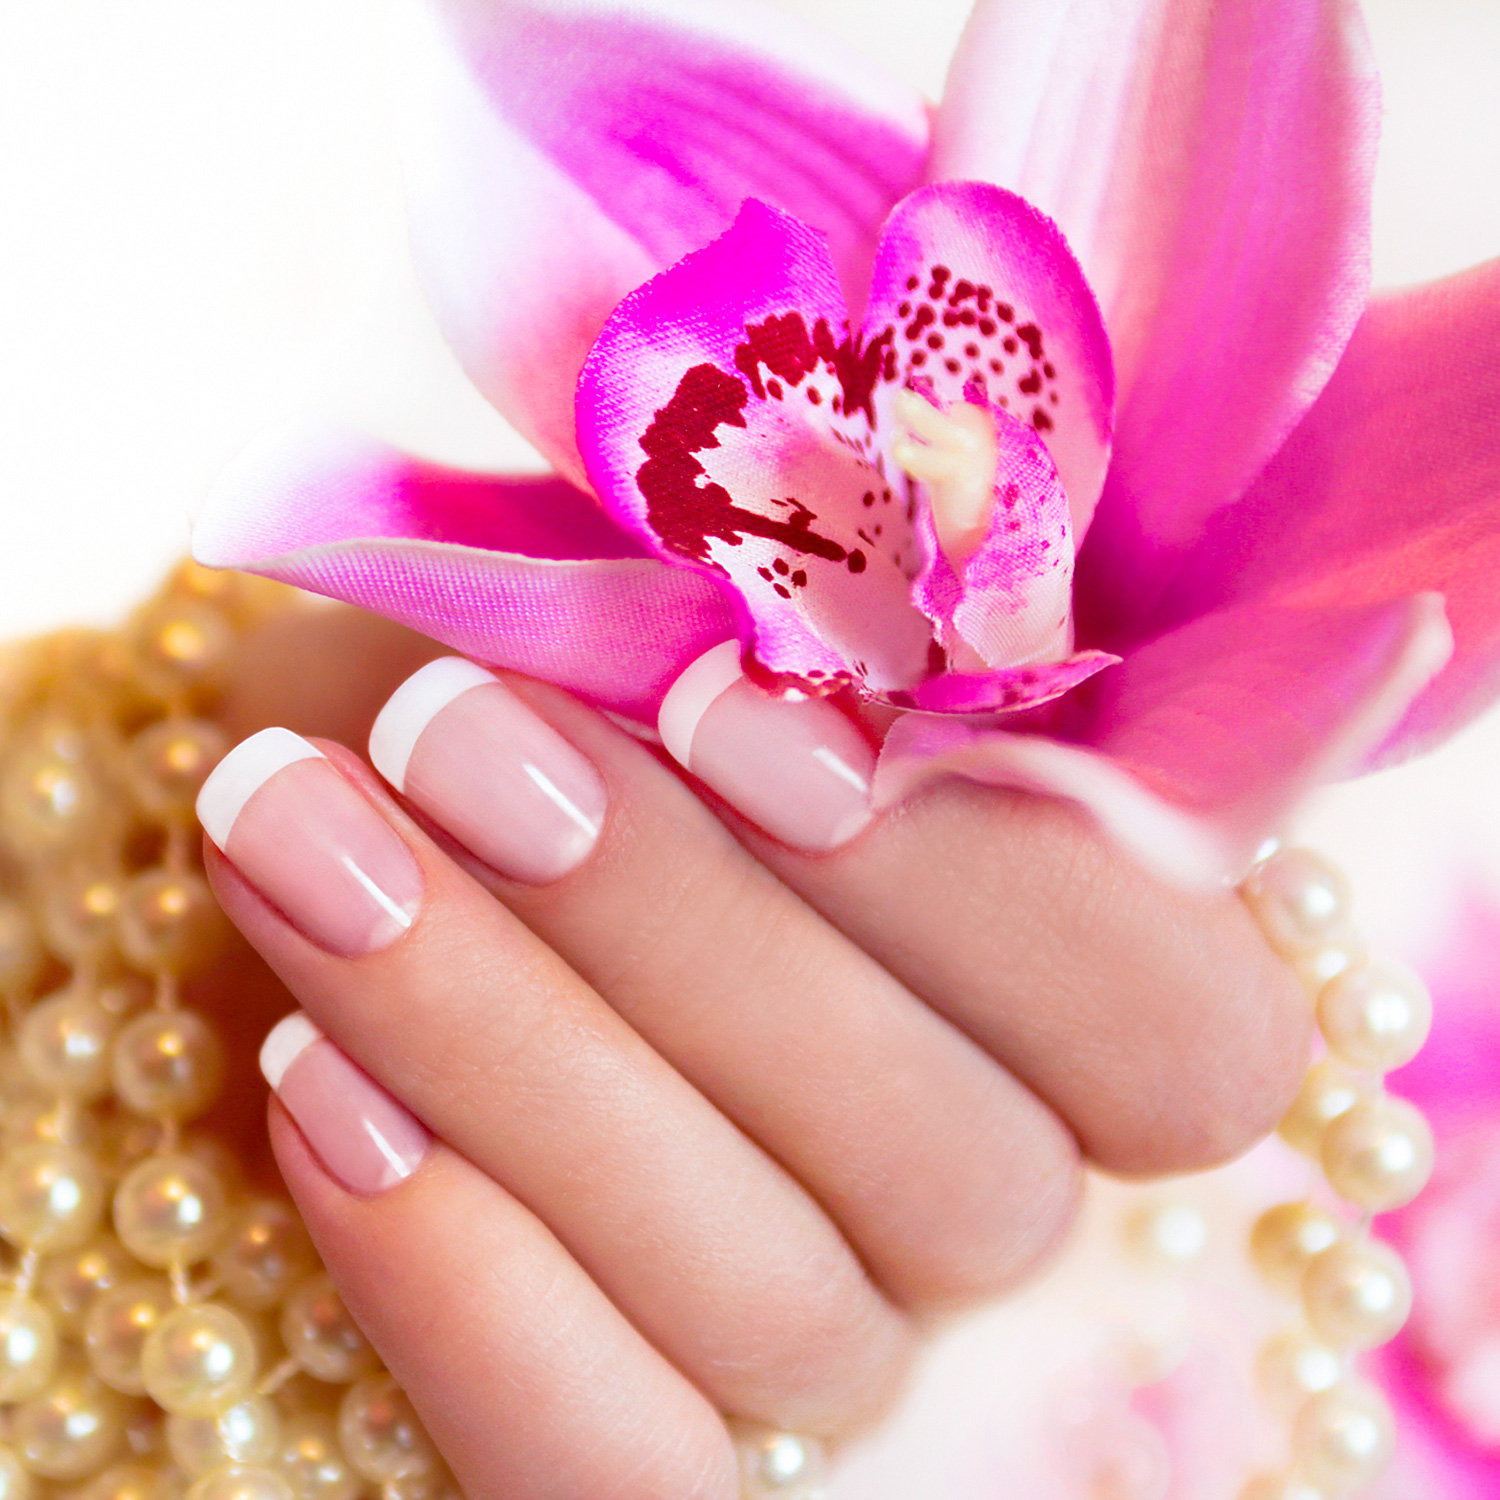 gel nails and spa photo - 1